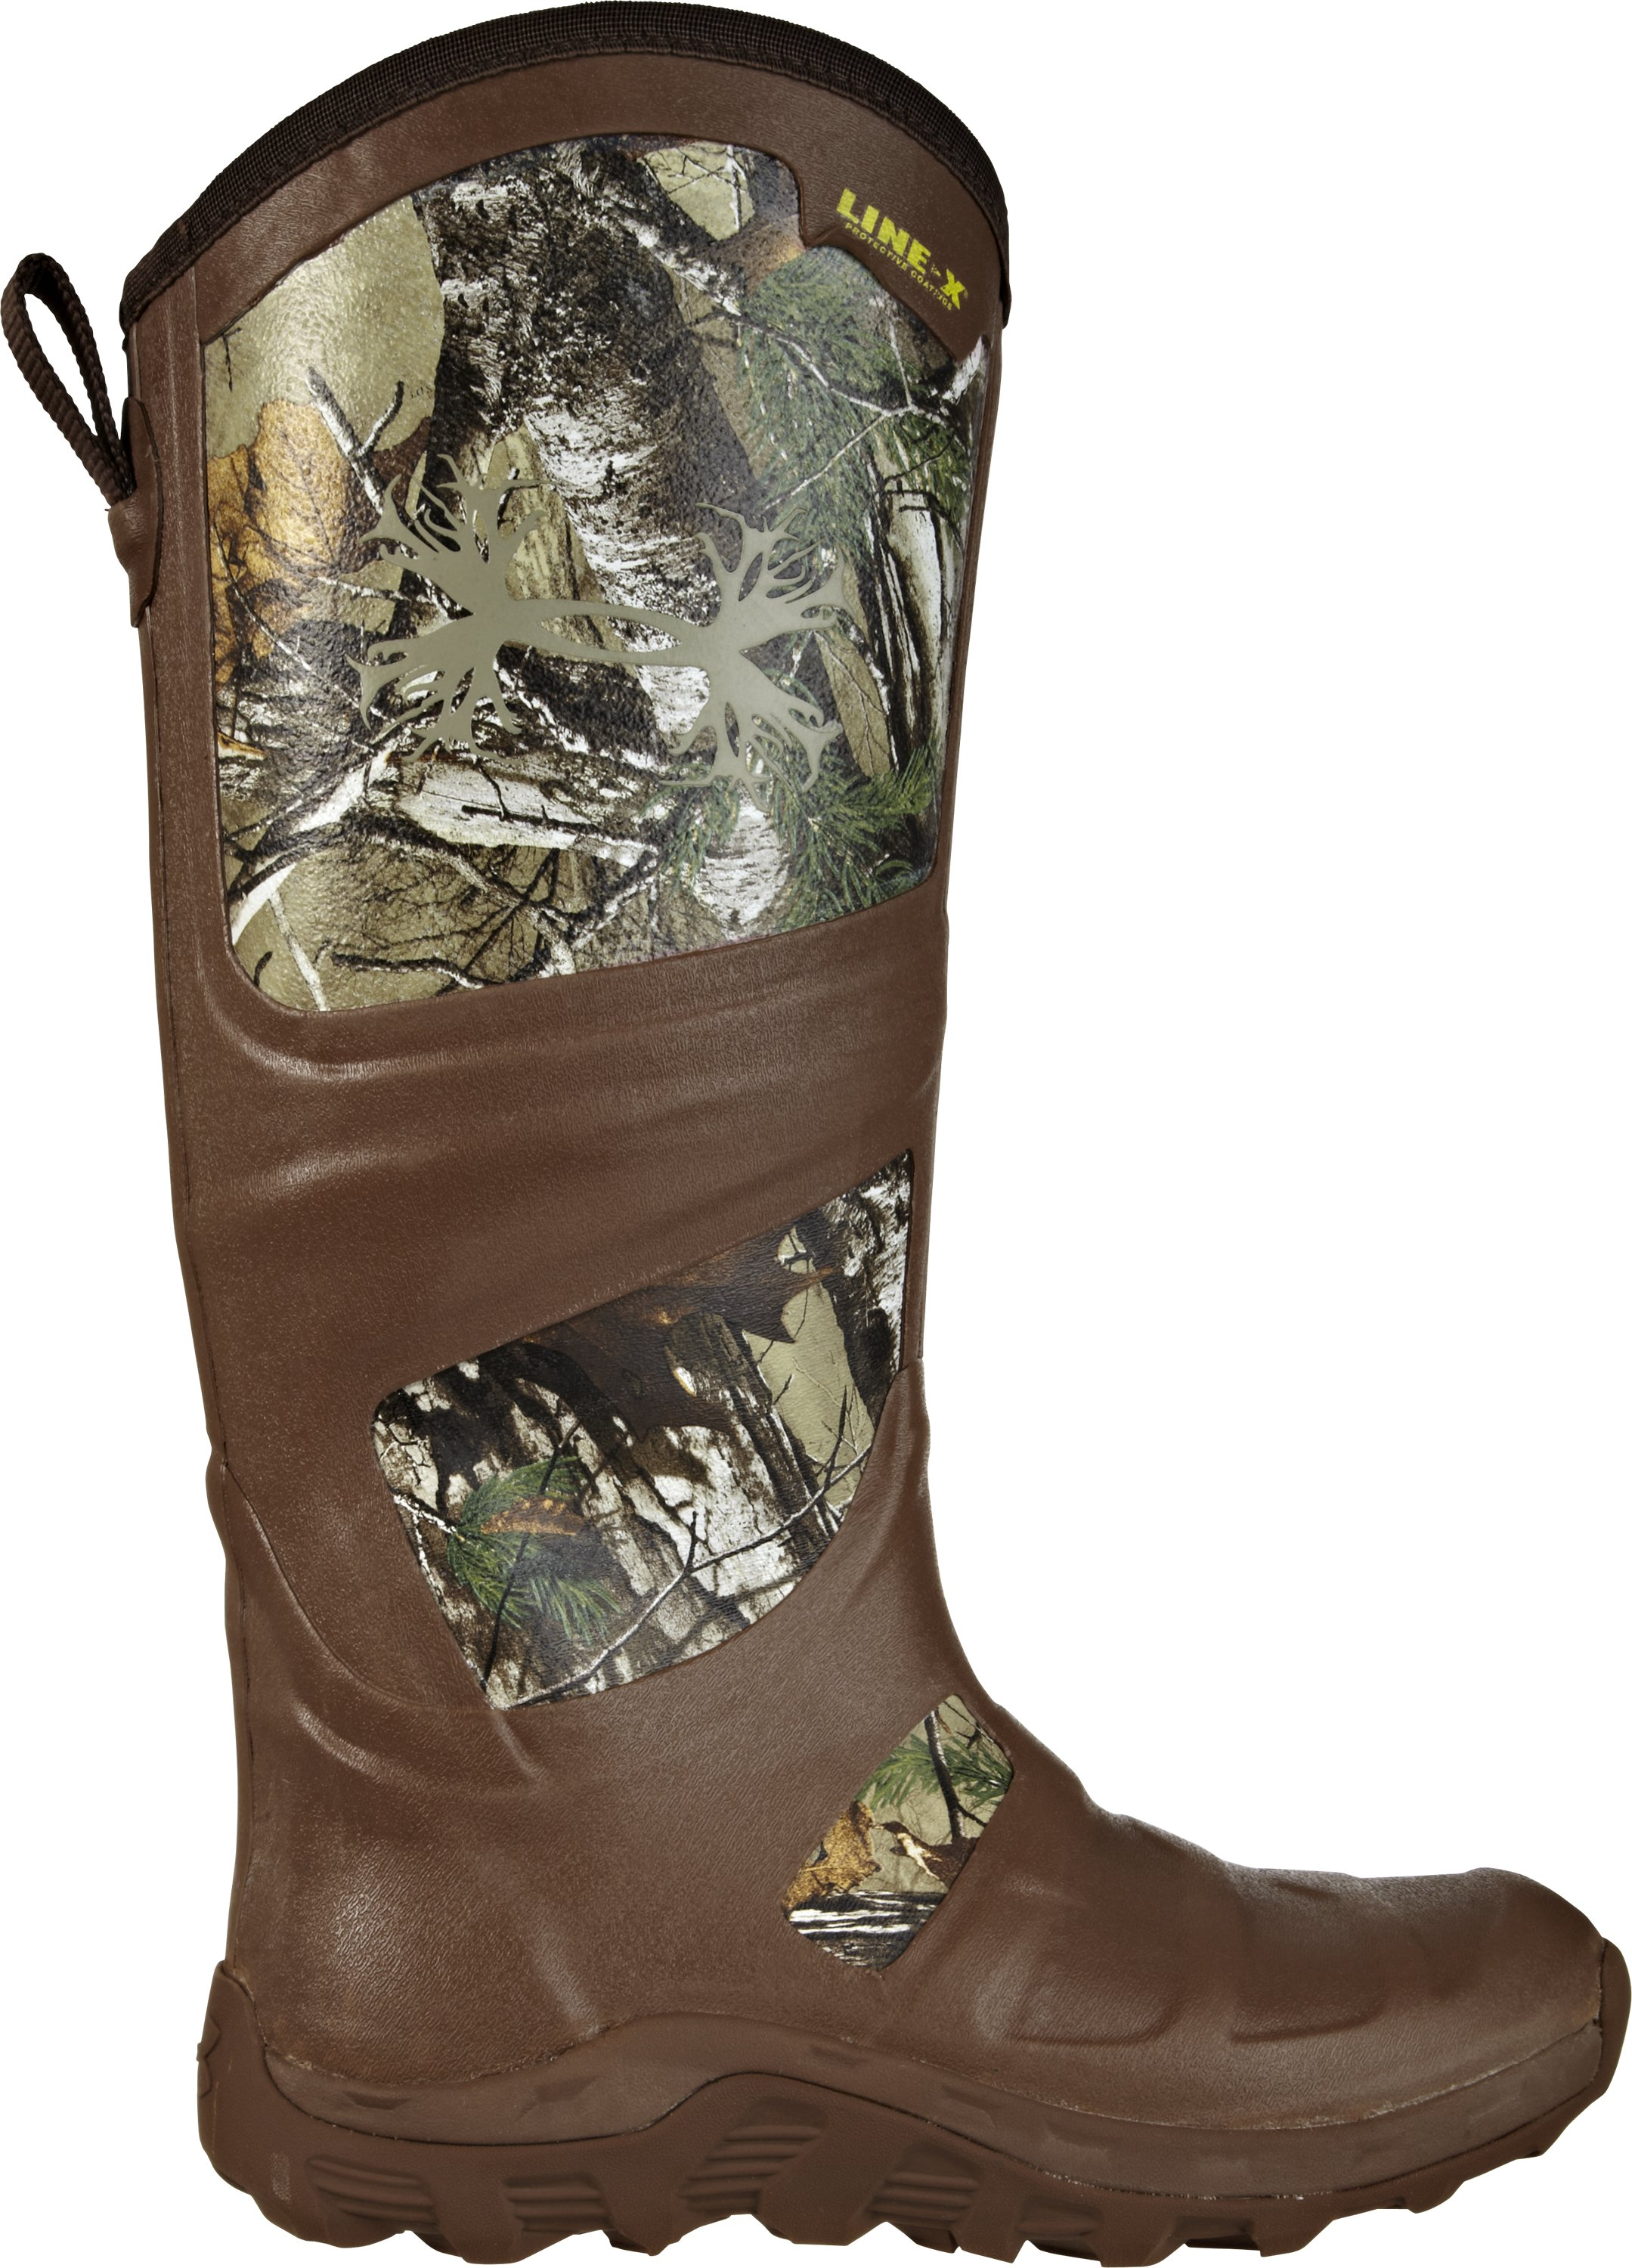 Men's UA Spinex Hunting Boots, REALTREE AP-XTRA